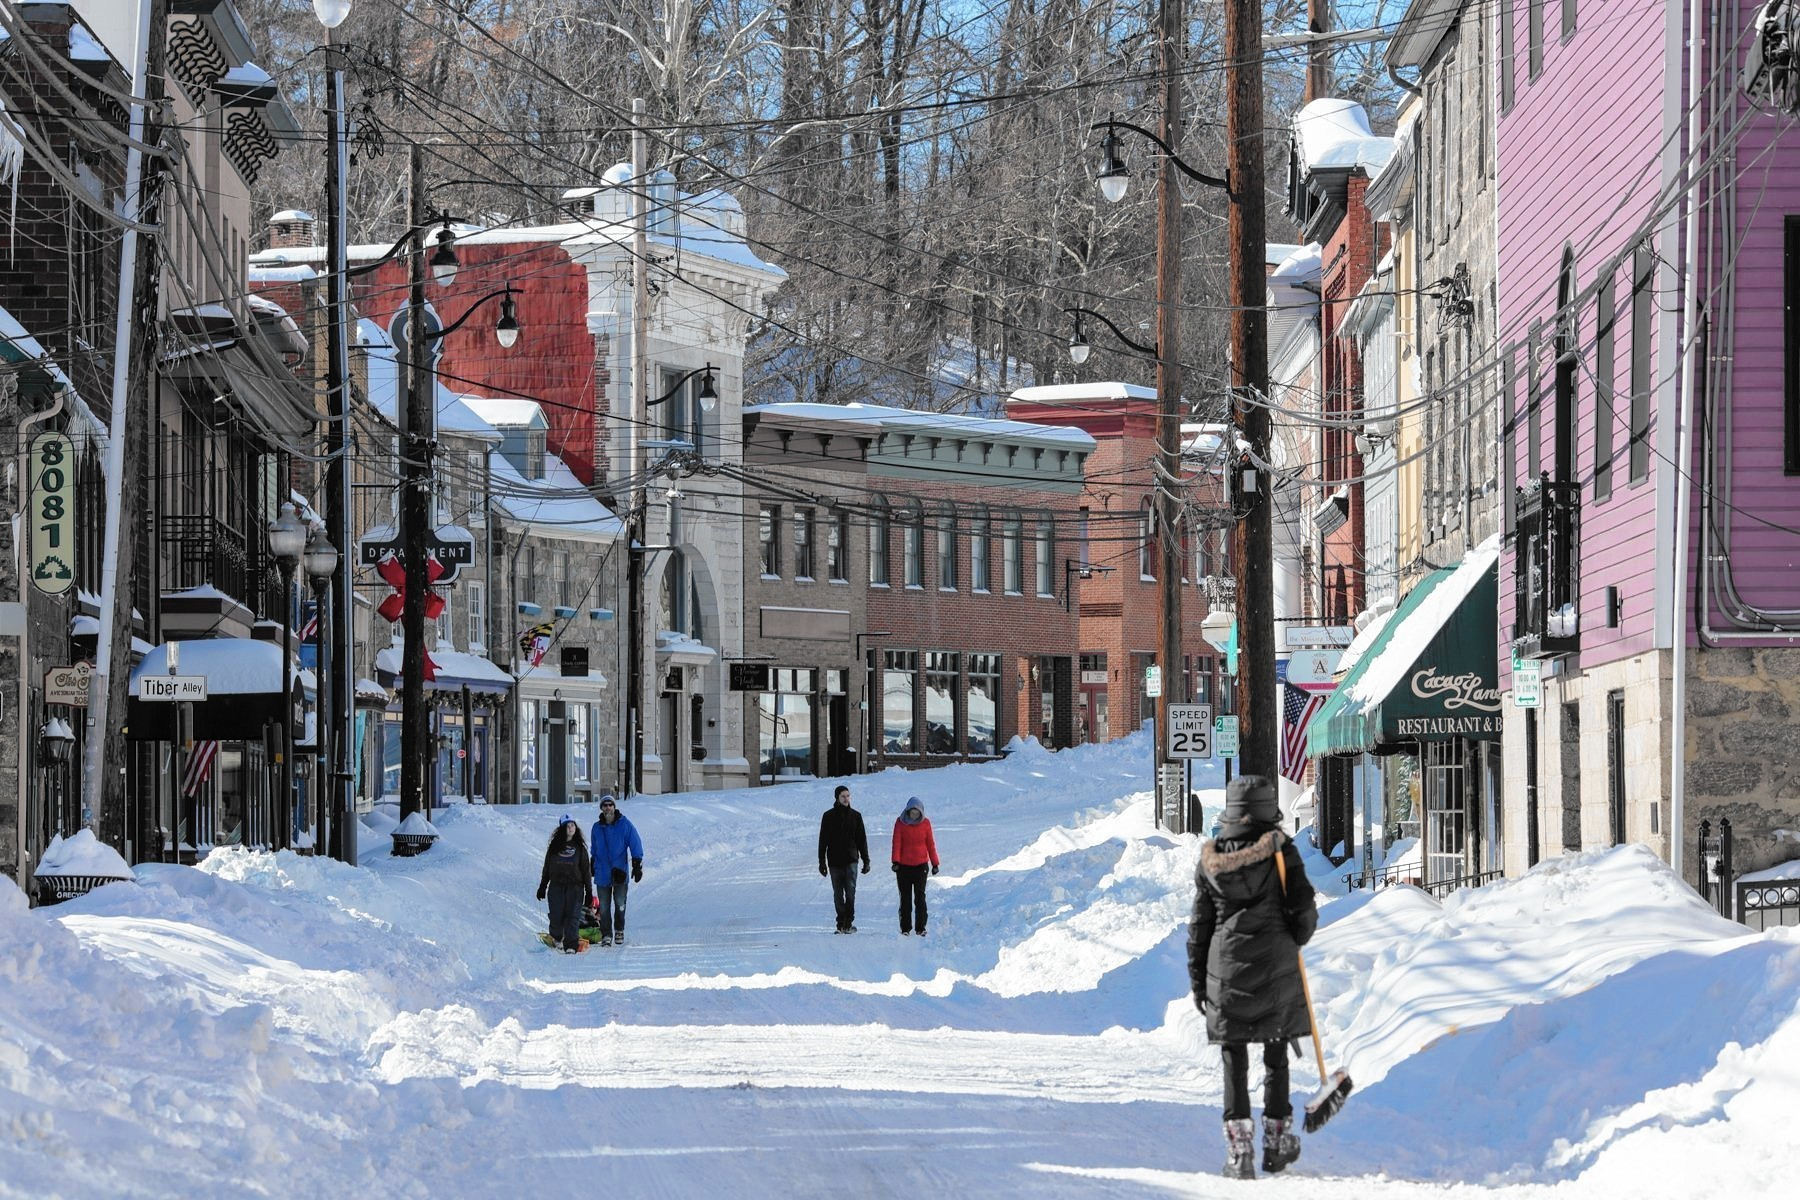 After delays in snow clean-up, some Main Street businesses ...